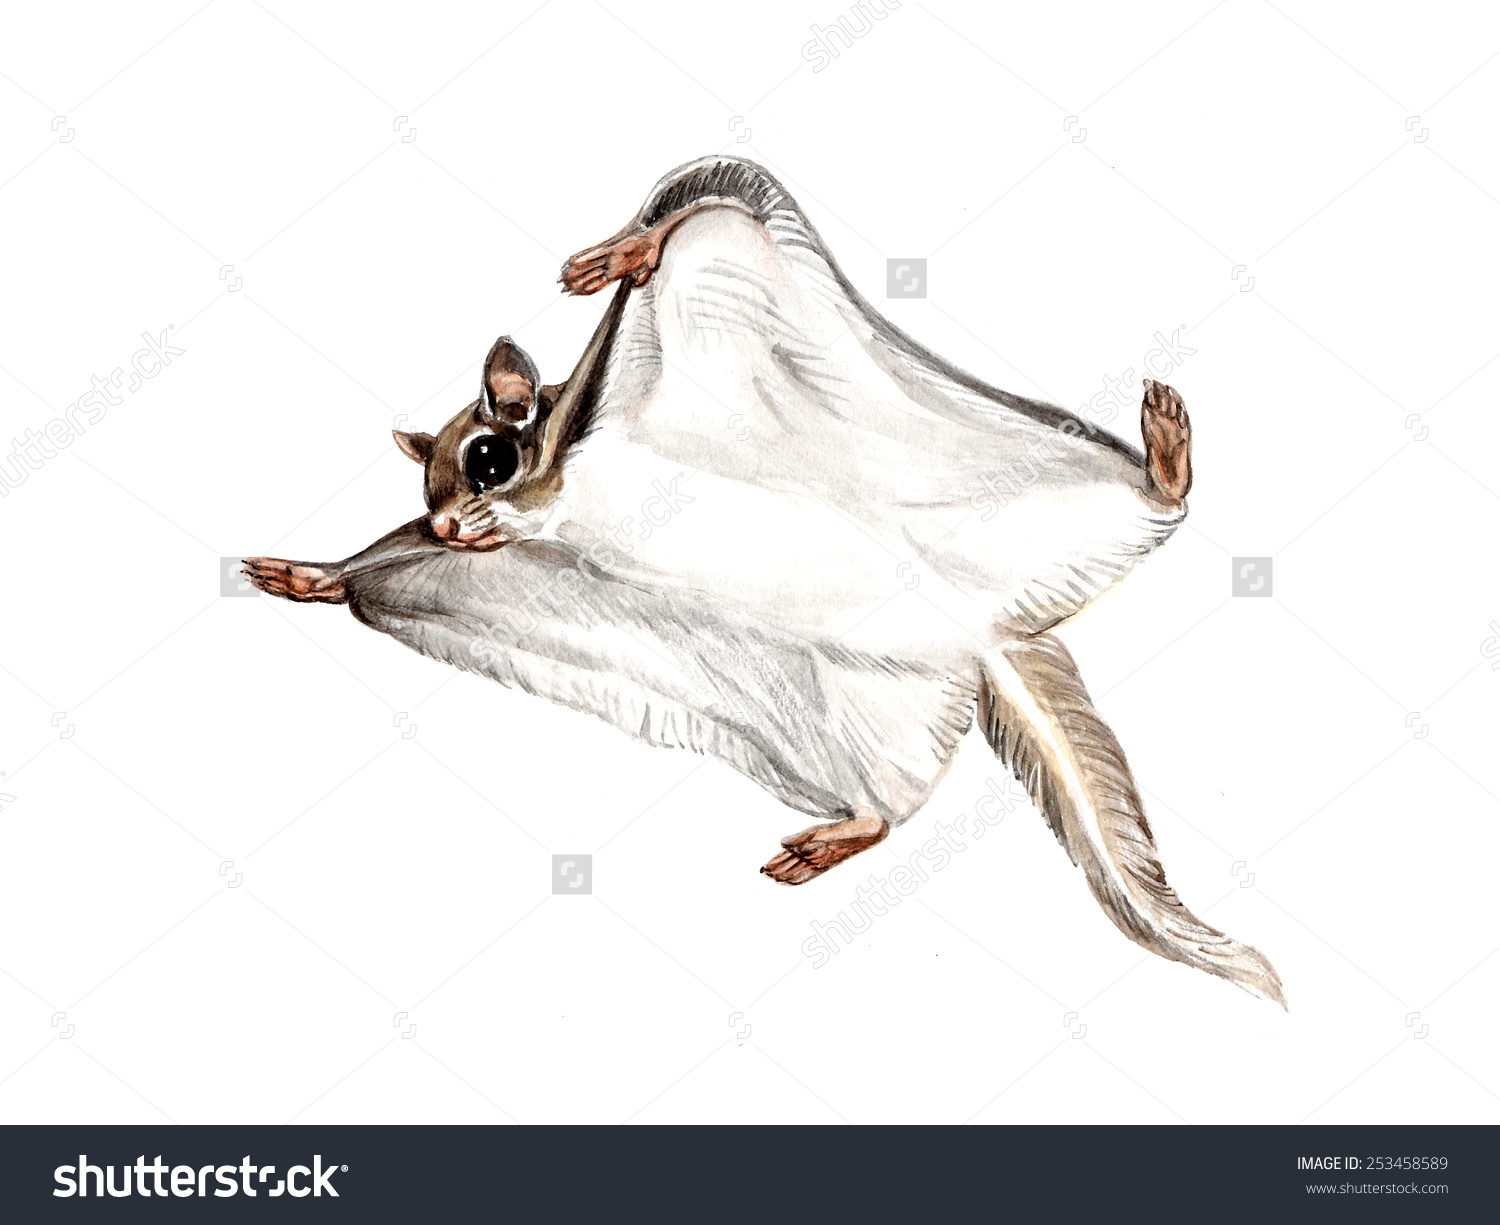 Siberian Flying Squirrel clipart #16, Download drawings